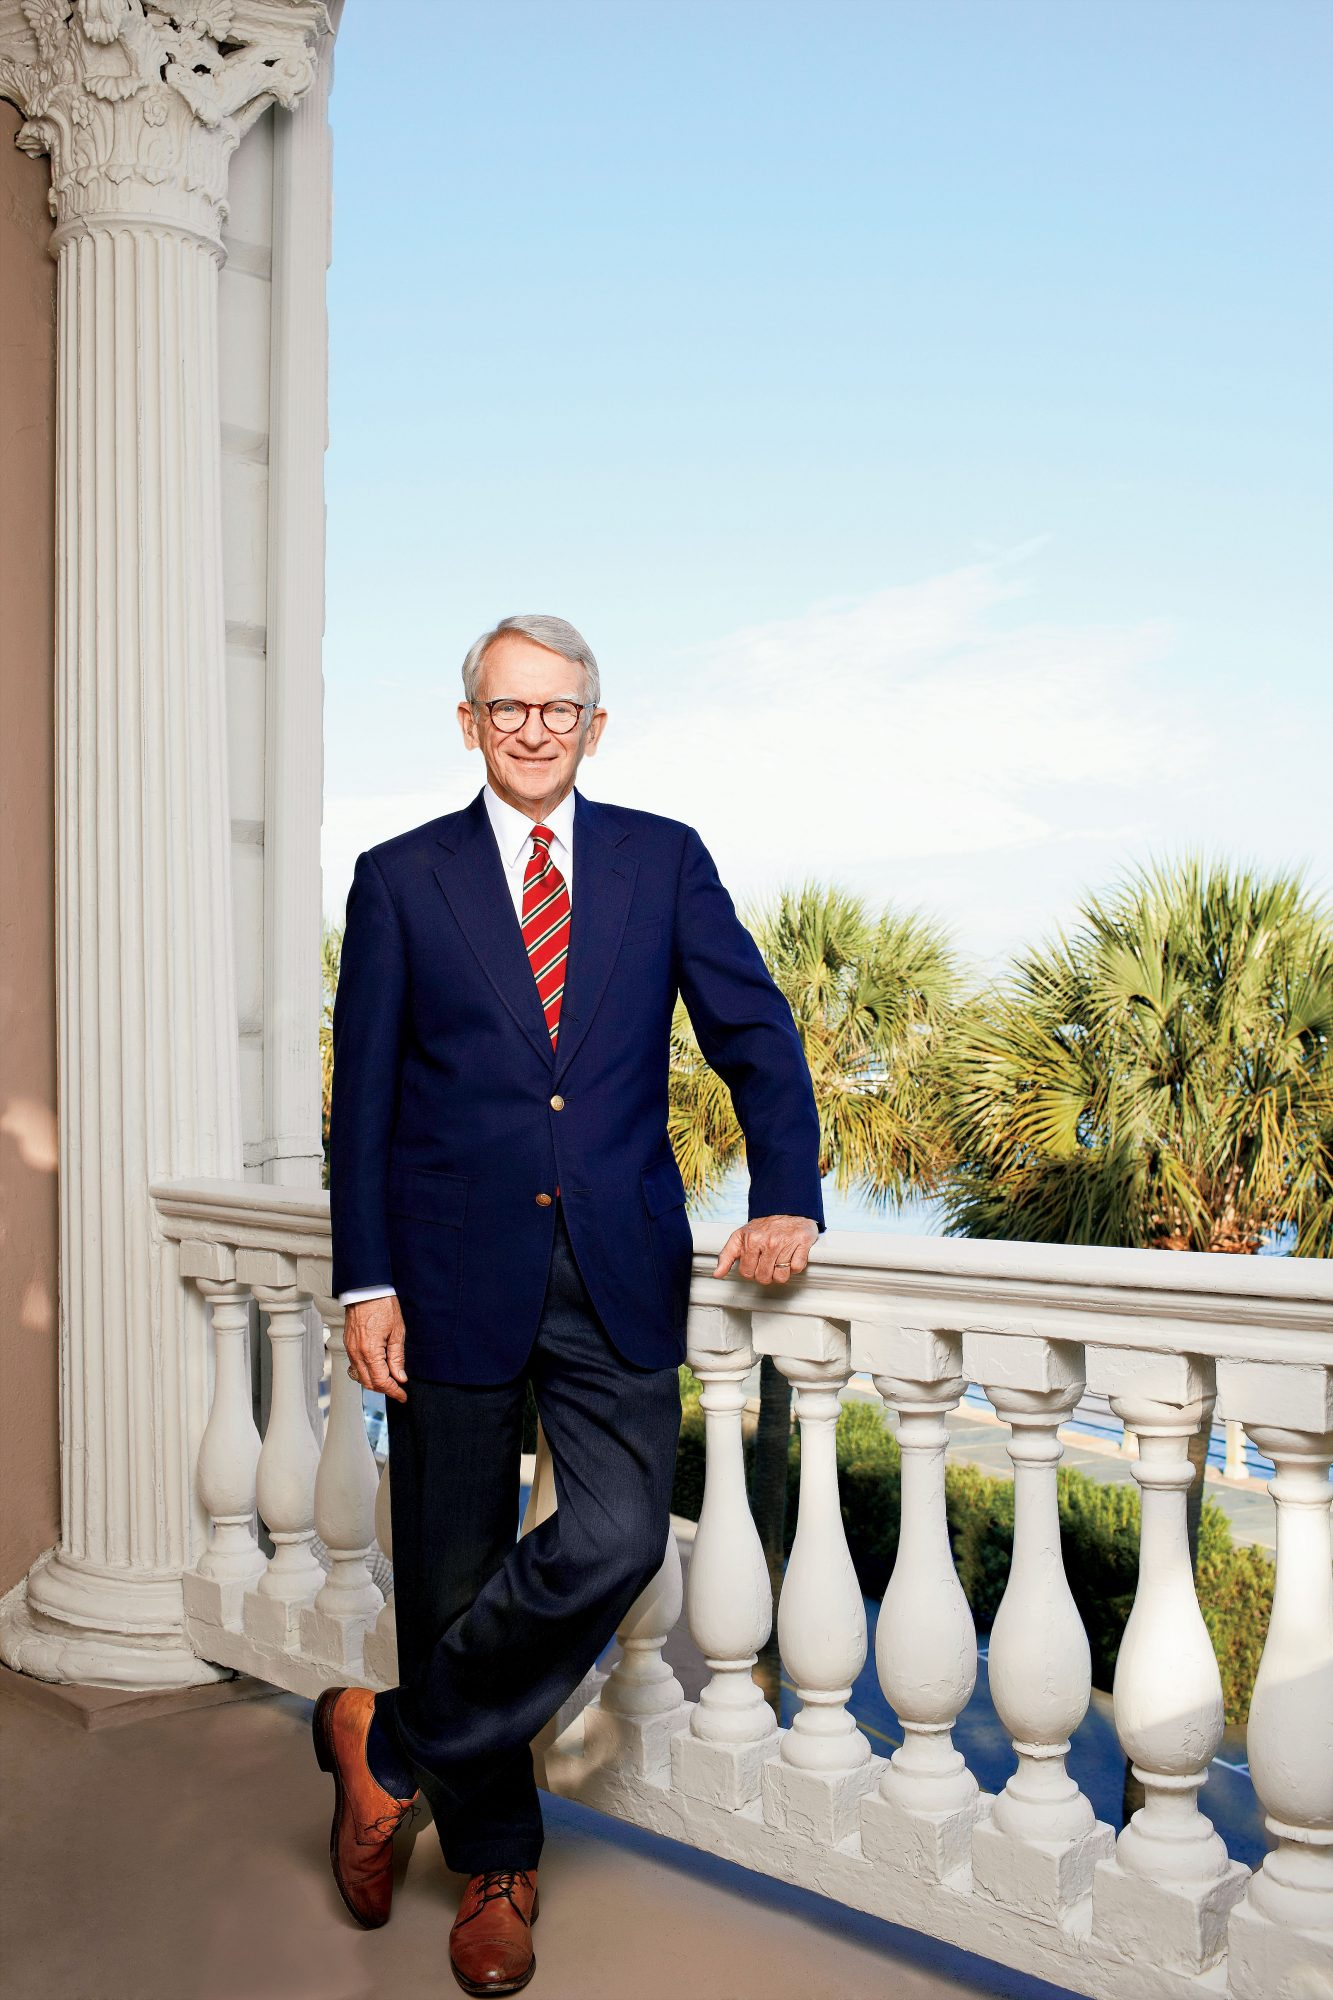 Charleston's Mayor Joe Riley